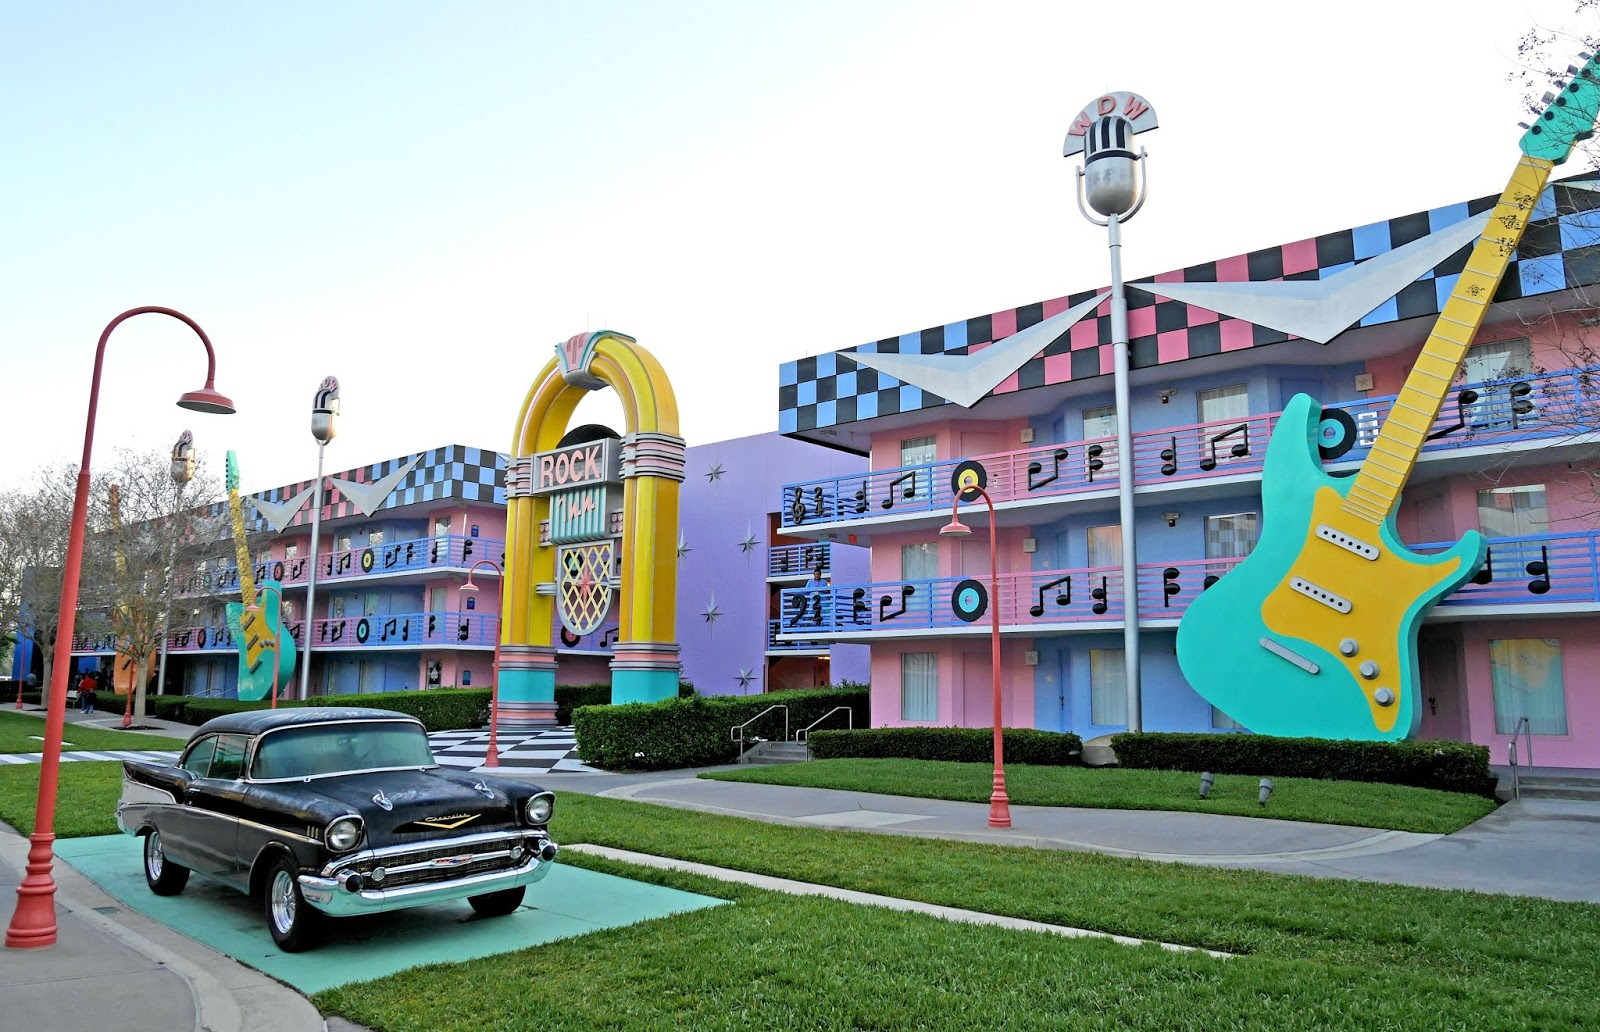 Rock Inn at Disney's All Star Music resort, Florida